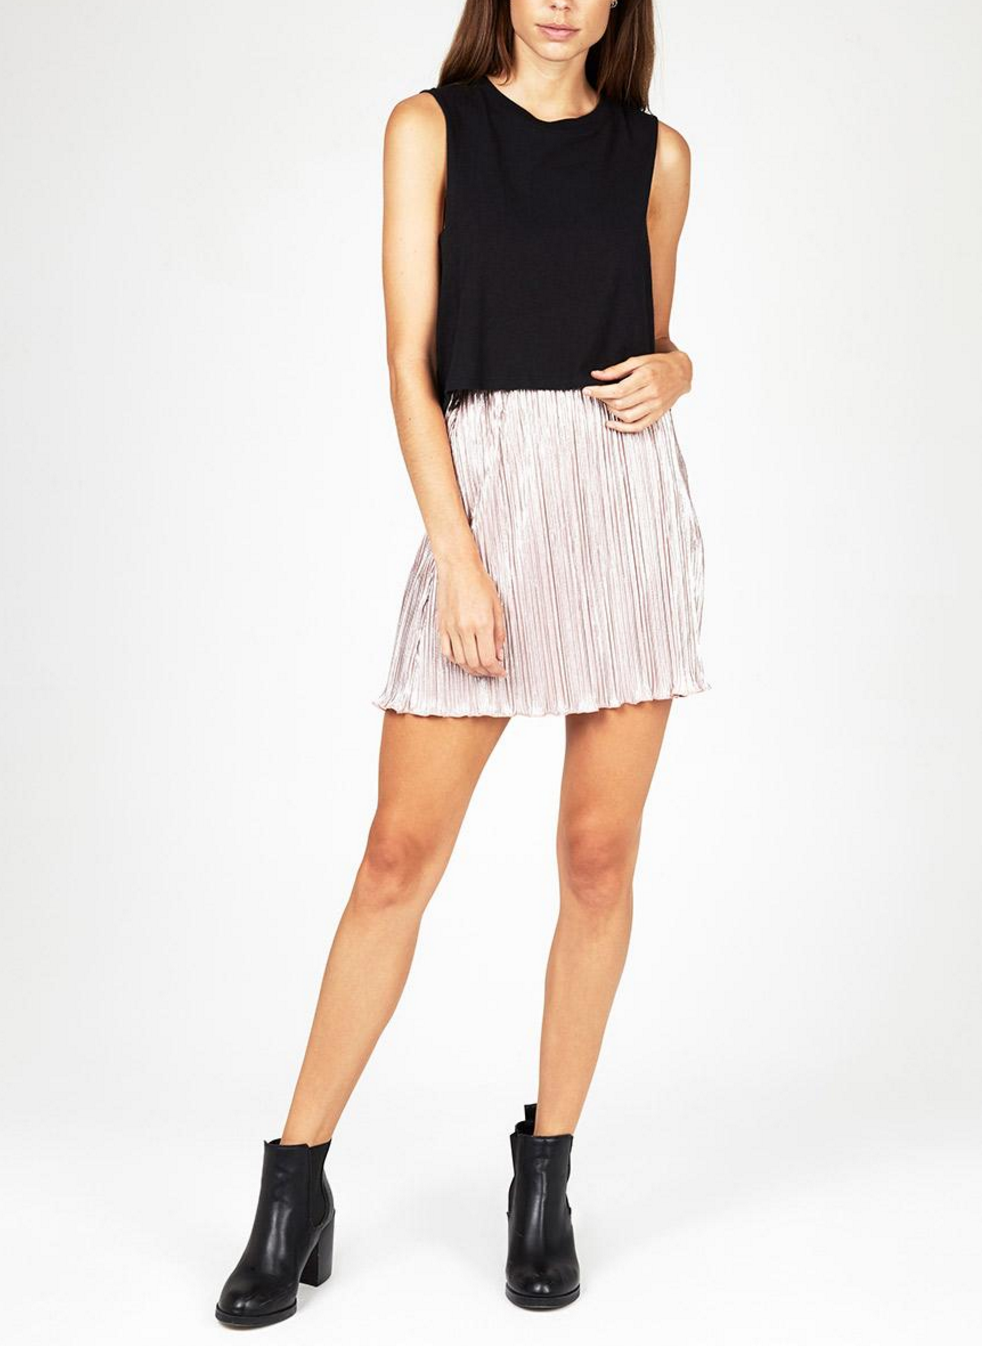 Neon Hart metallic rose micro pleat skirt $59.95